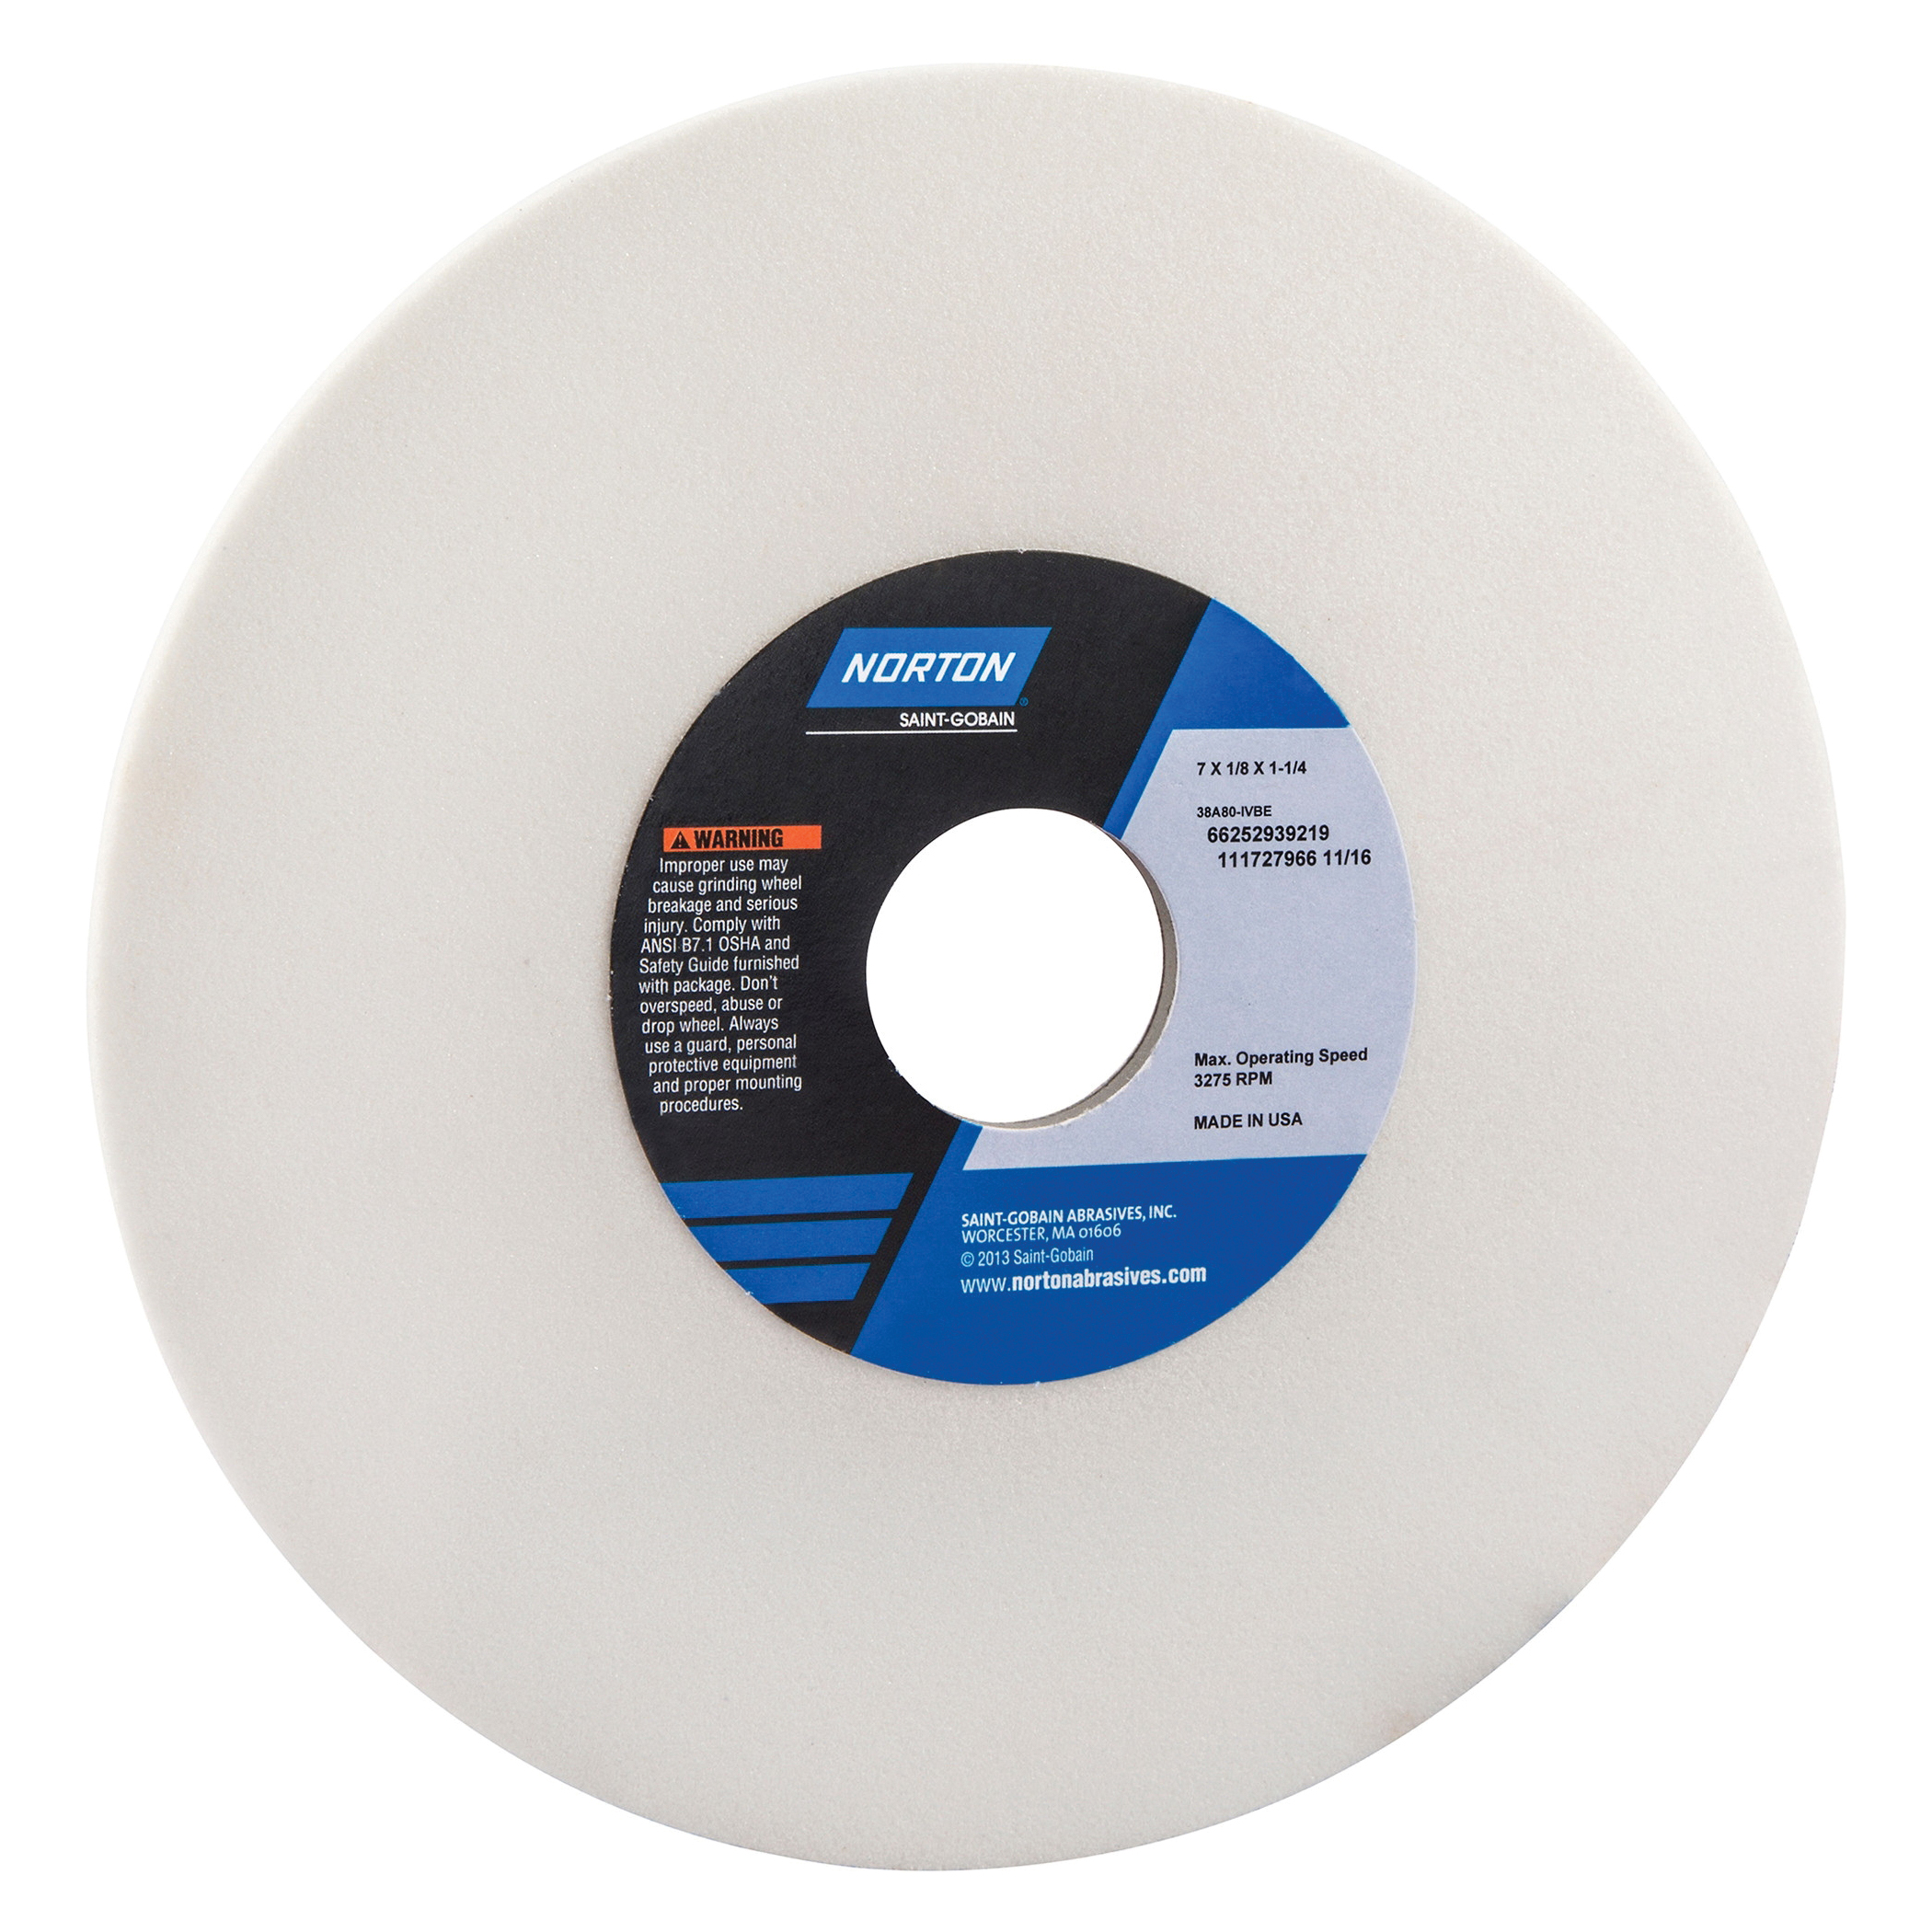 Norton® 66252939219 38A Straight Toolroom Wheel, 7 in Dia x 1/8 in THK, 1-1/4 in Center Hole, 80 Grit, Aluminum Oxide Abrasive